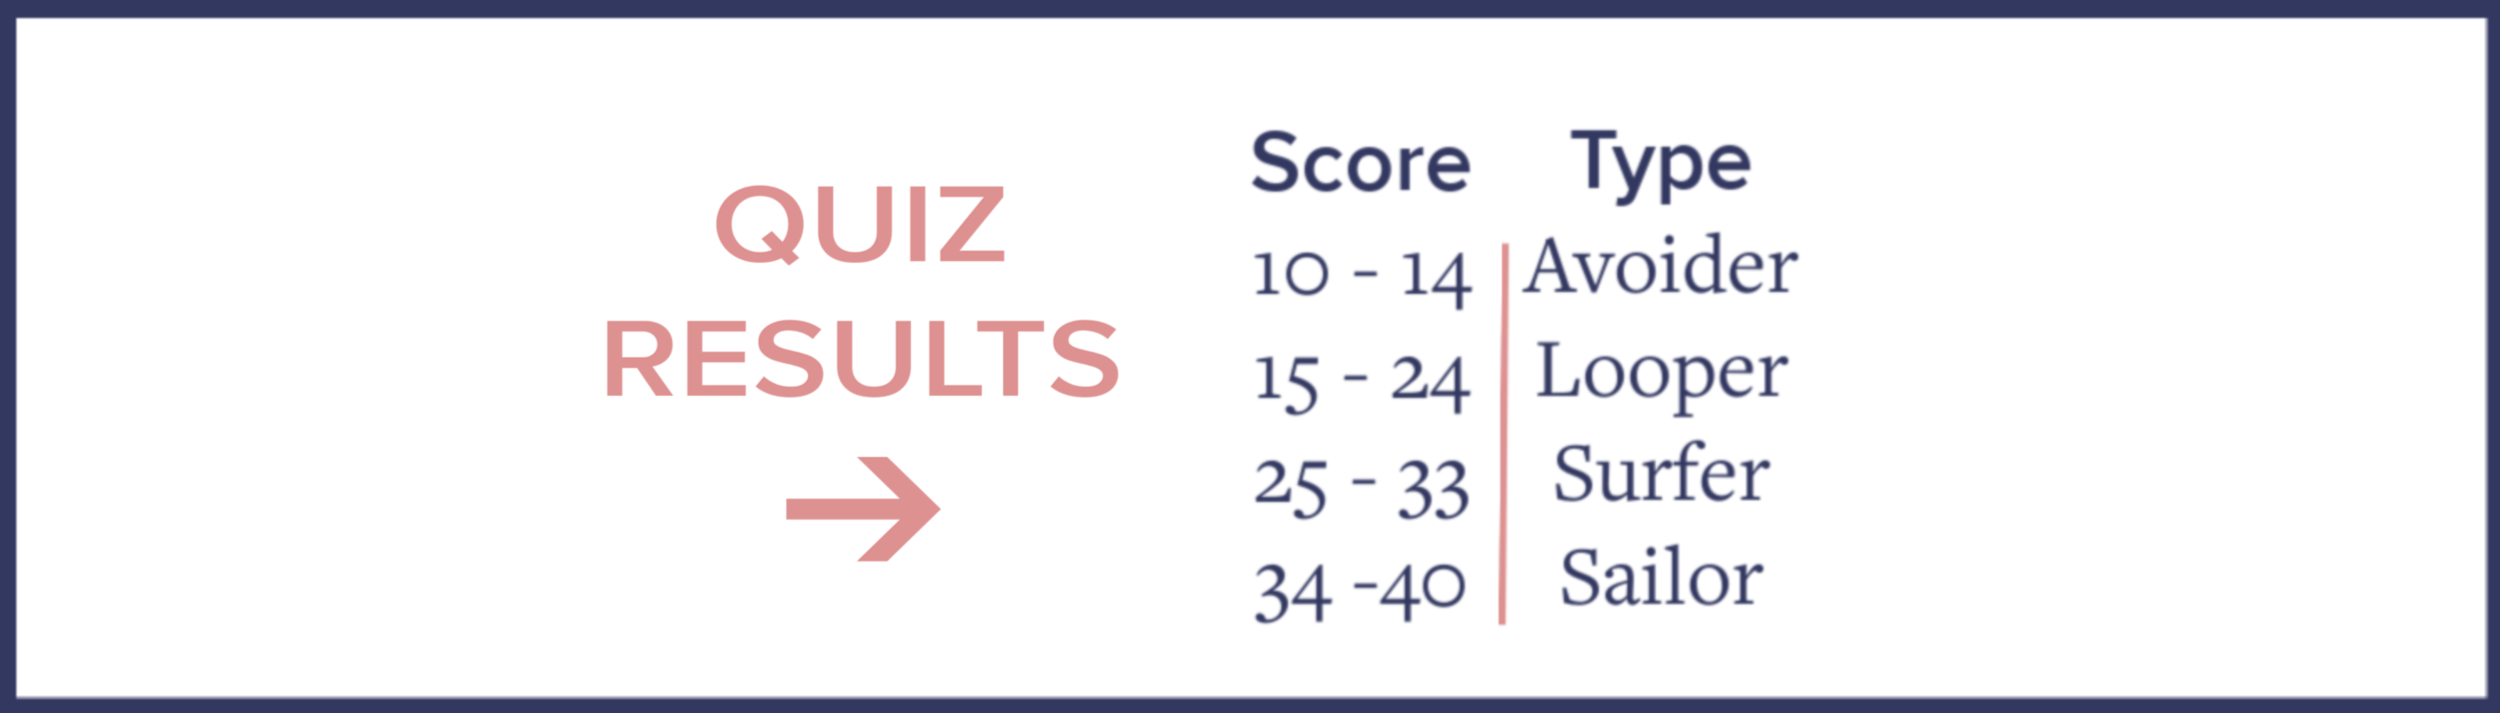 quiz results banner.png